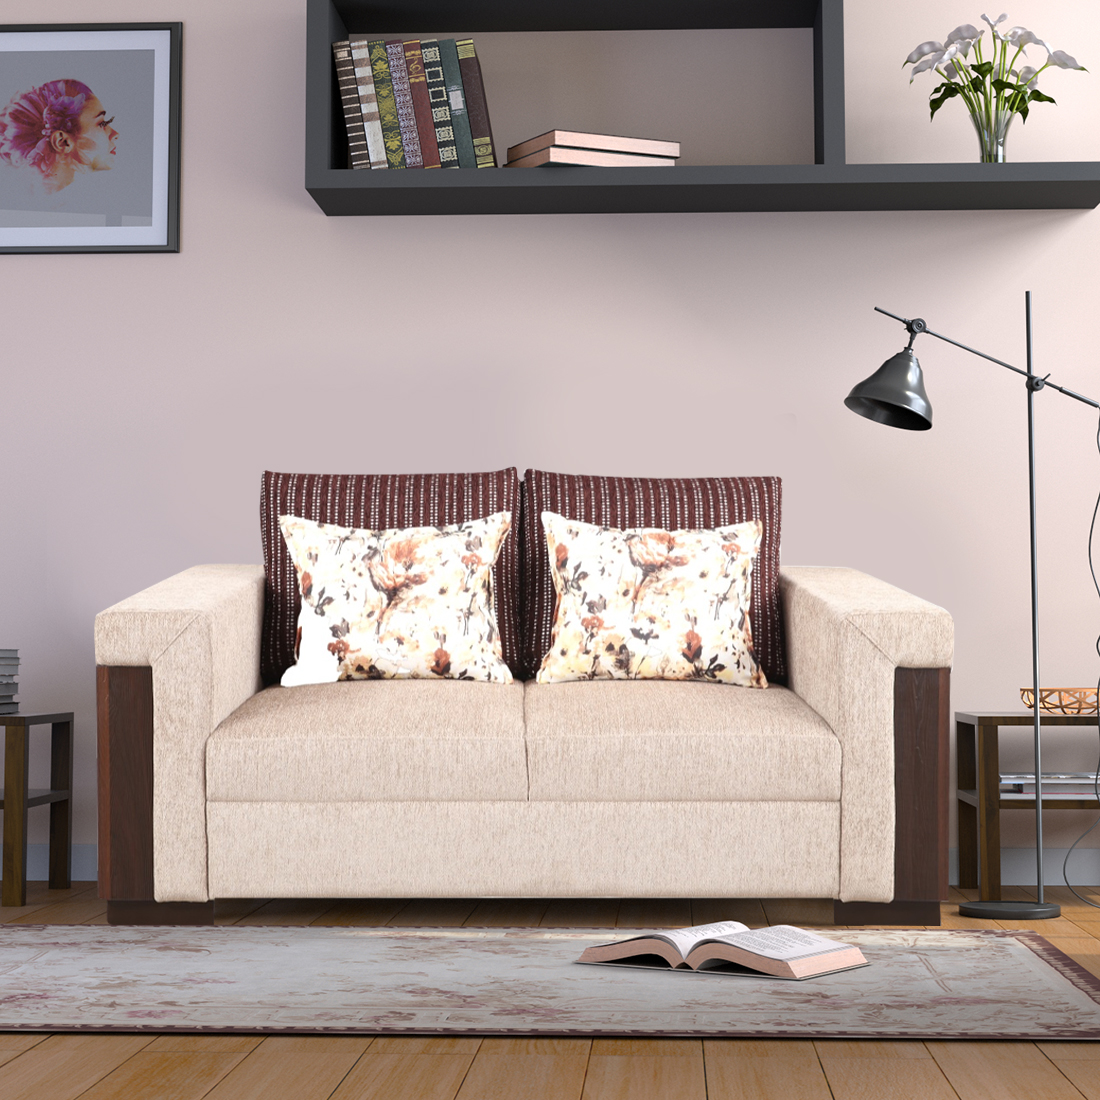 Amazon Fabric Two Seater Sofa in Beige Colour by HomeTown